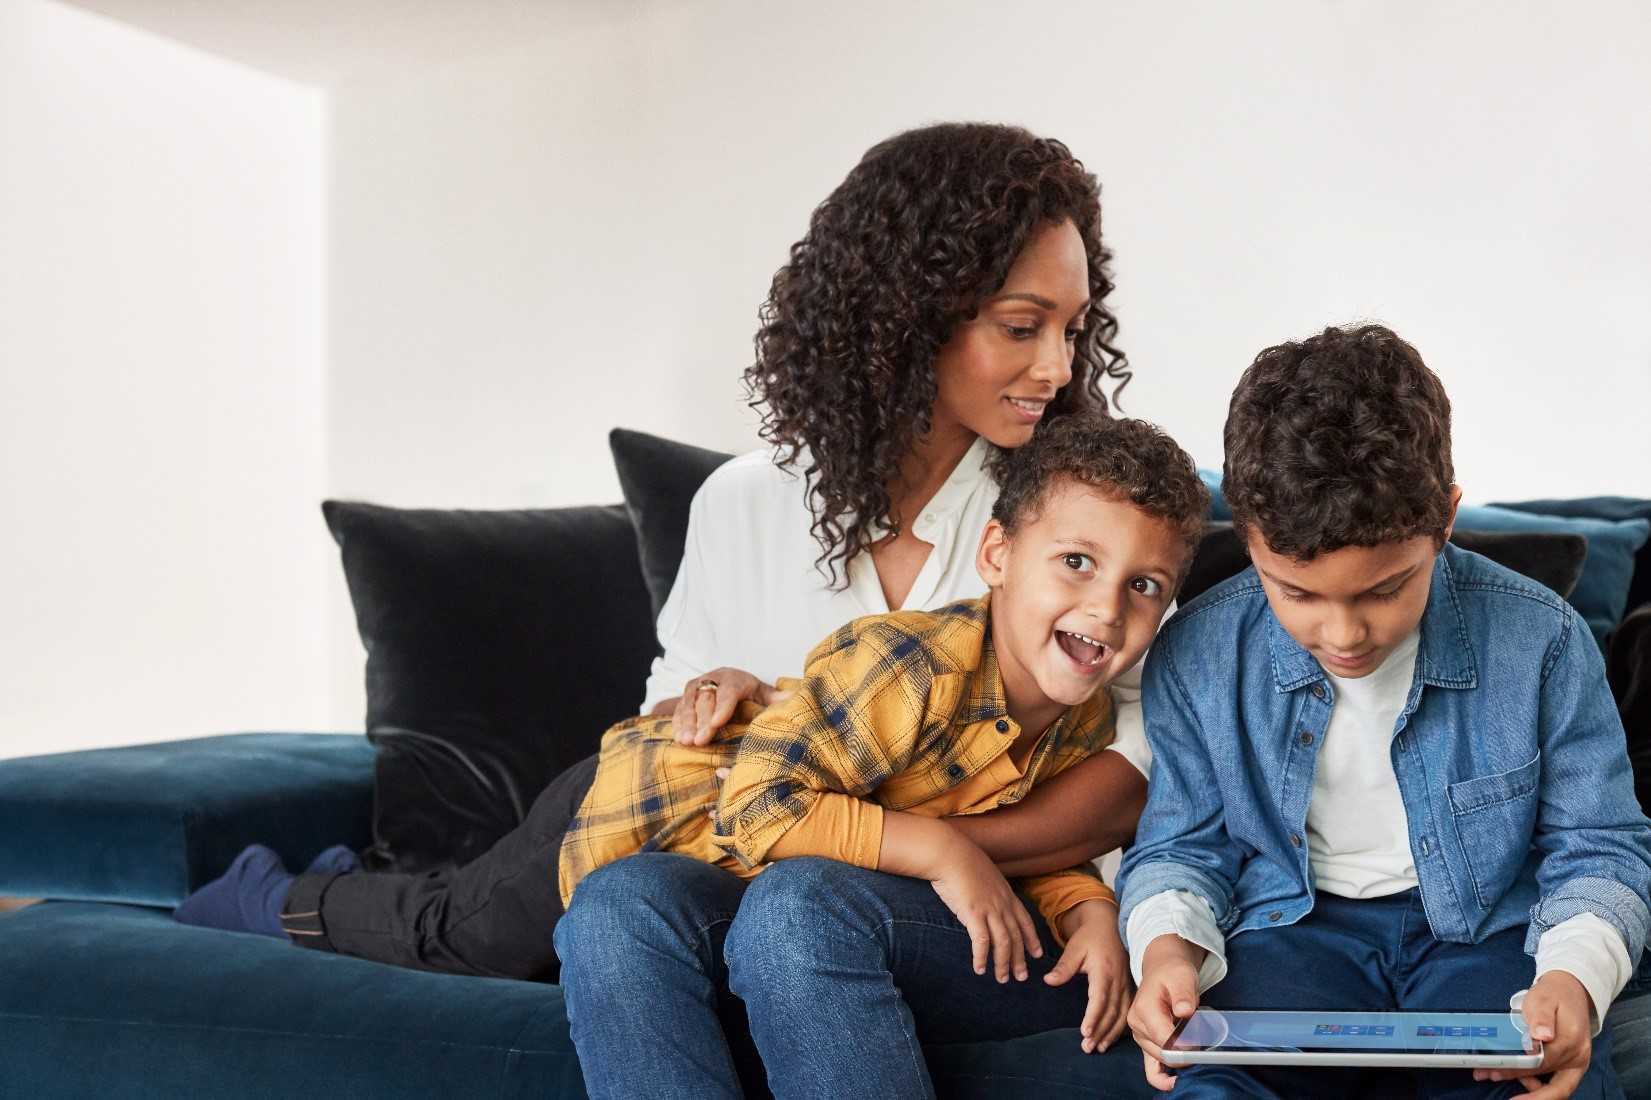 A family on a couch, one child holding a laptop.